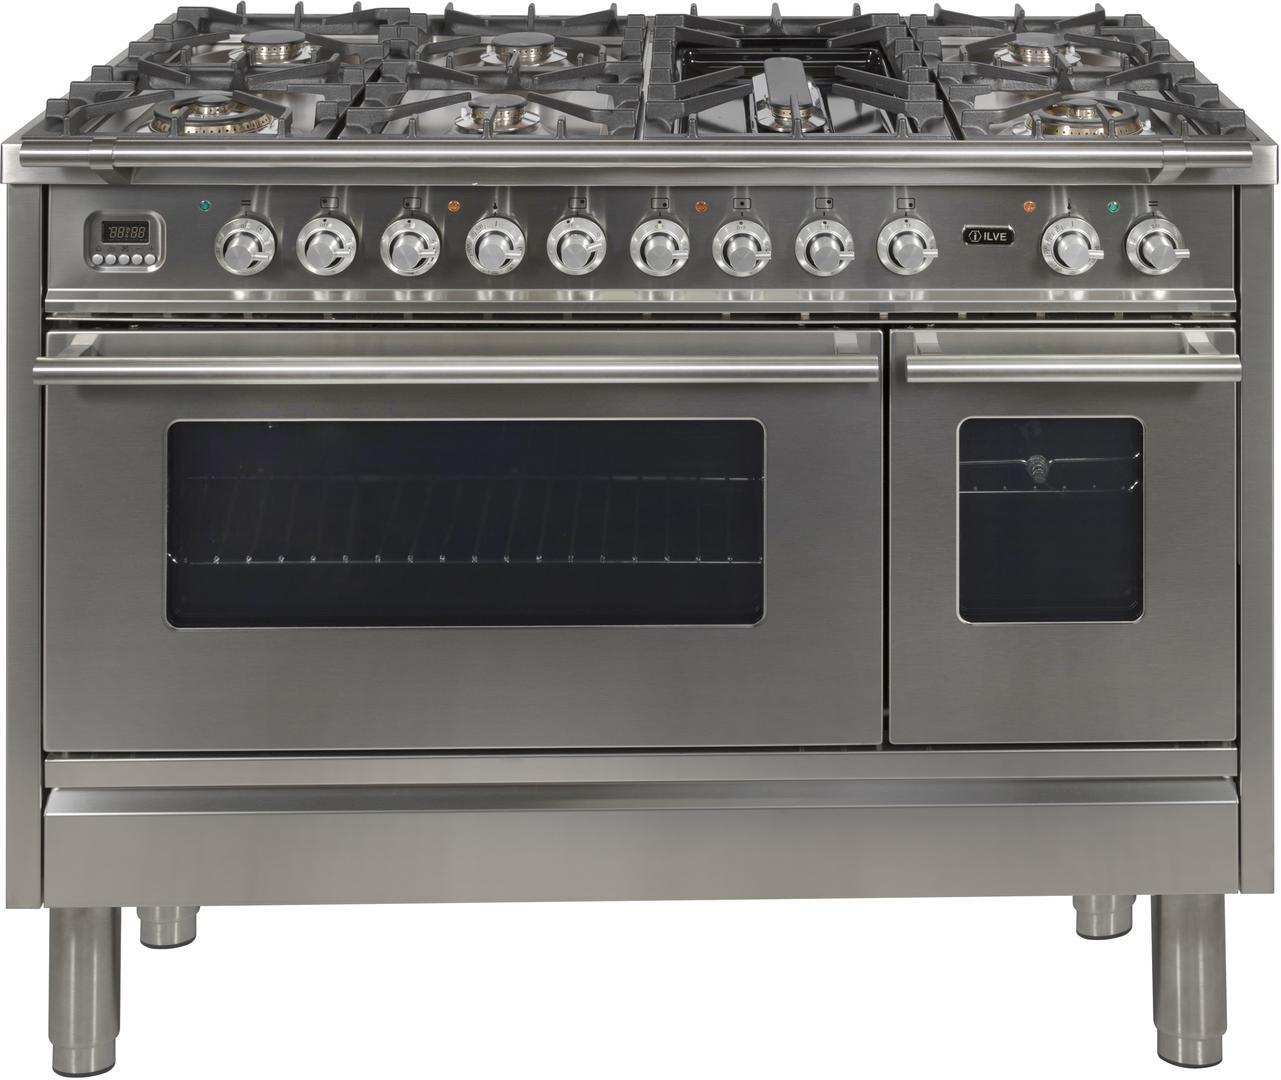 Ilve Professional Plus UPW120FDMPI Freestanding Dual Fuel Range Stainless Steel, Main Image